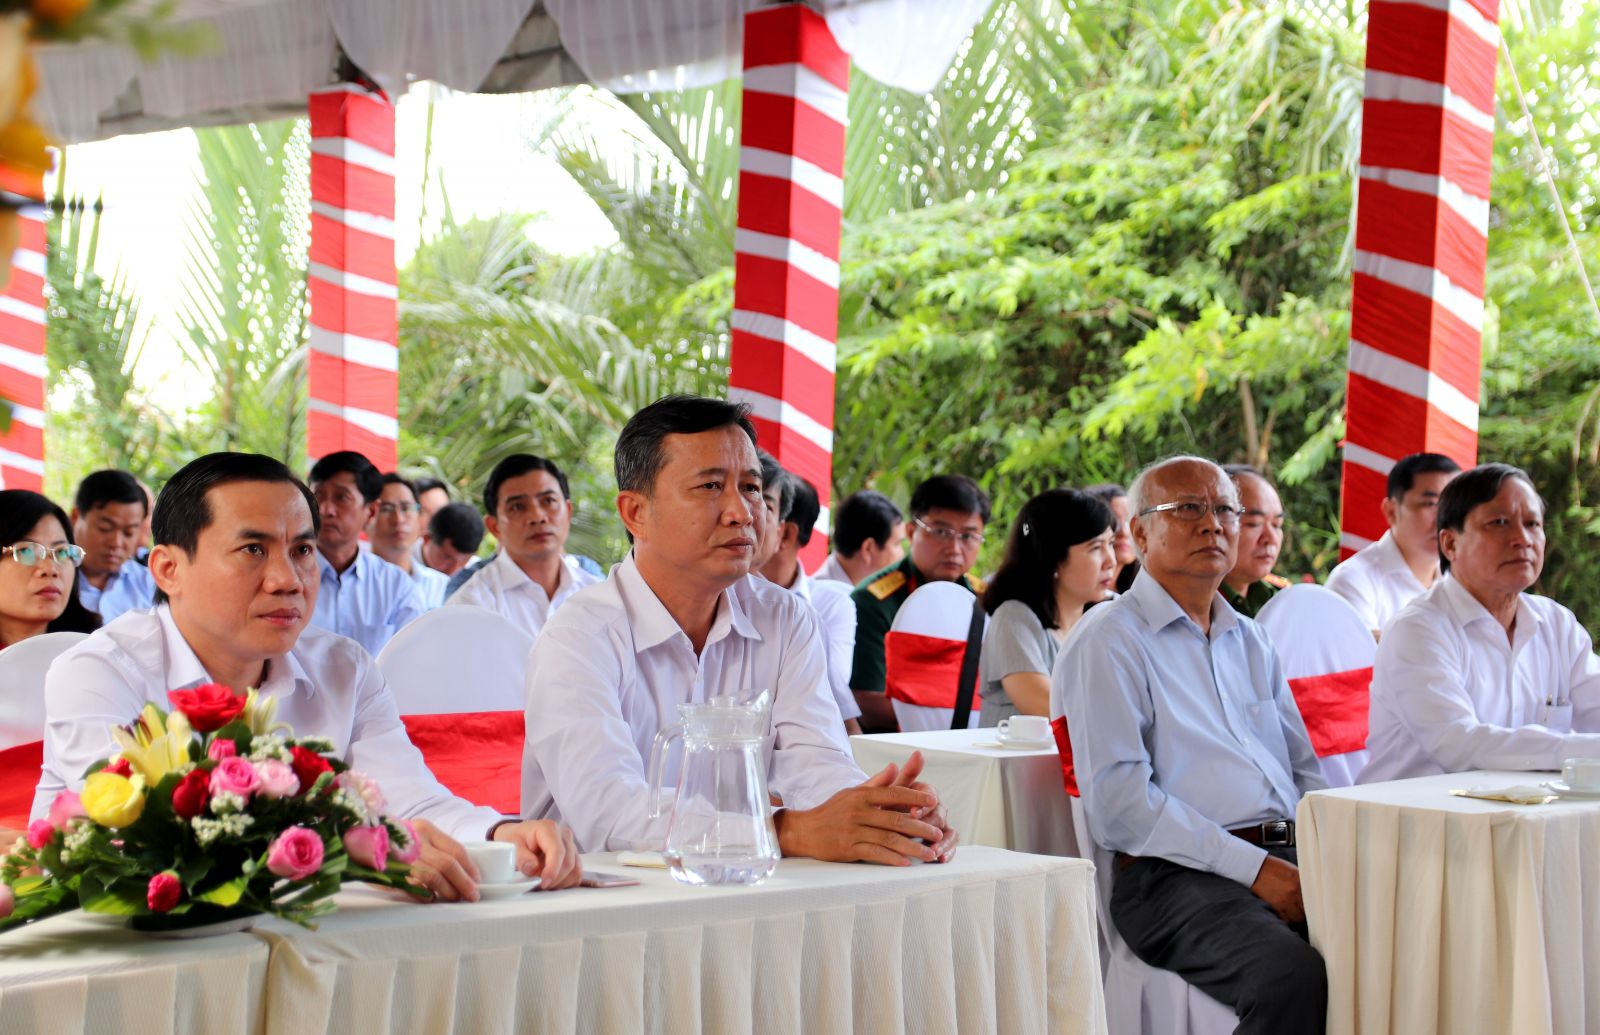 Delegates attend the ceremony about the commencement of Bao Dinh River's Embankment Project (the section from Bao Dinh sluice to the first sluice of Ring Road canal)